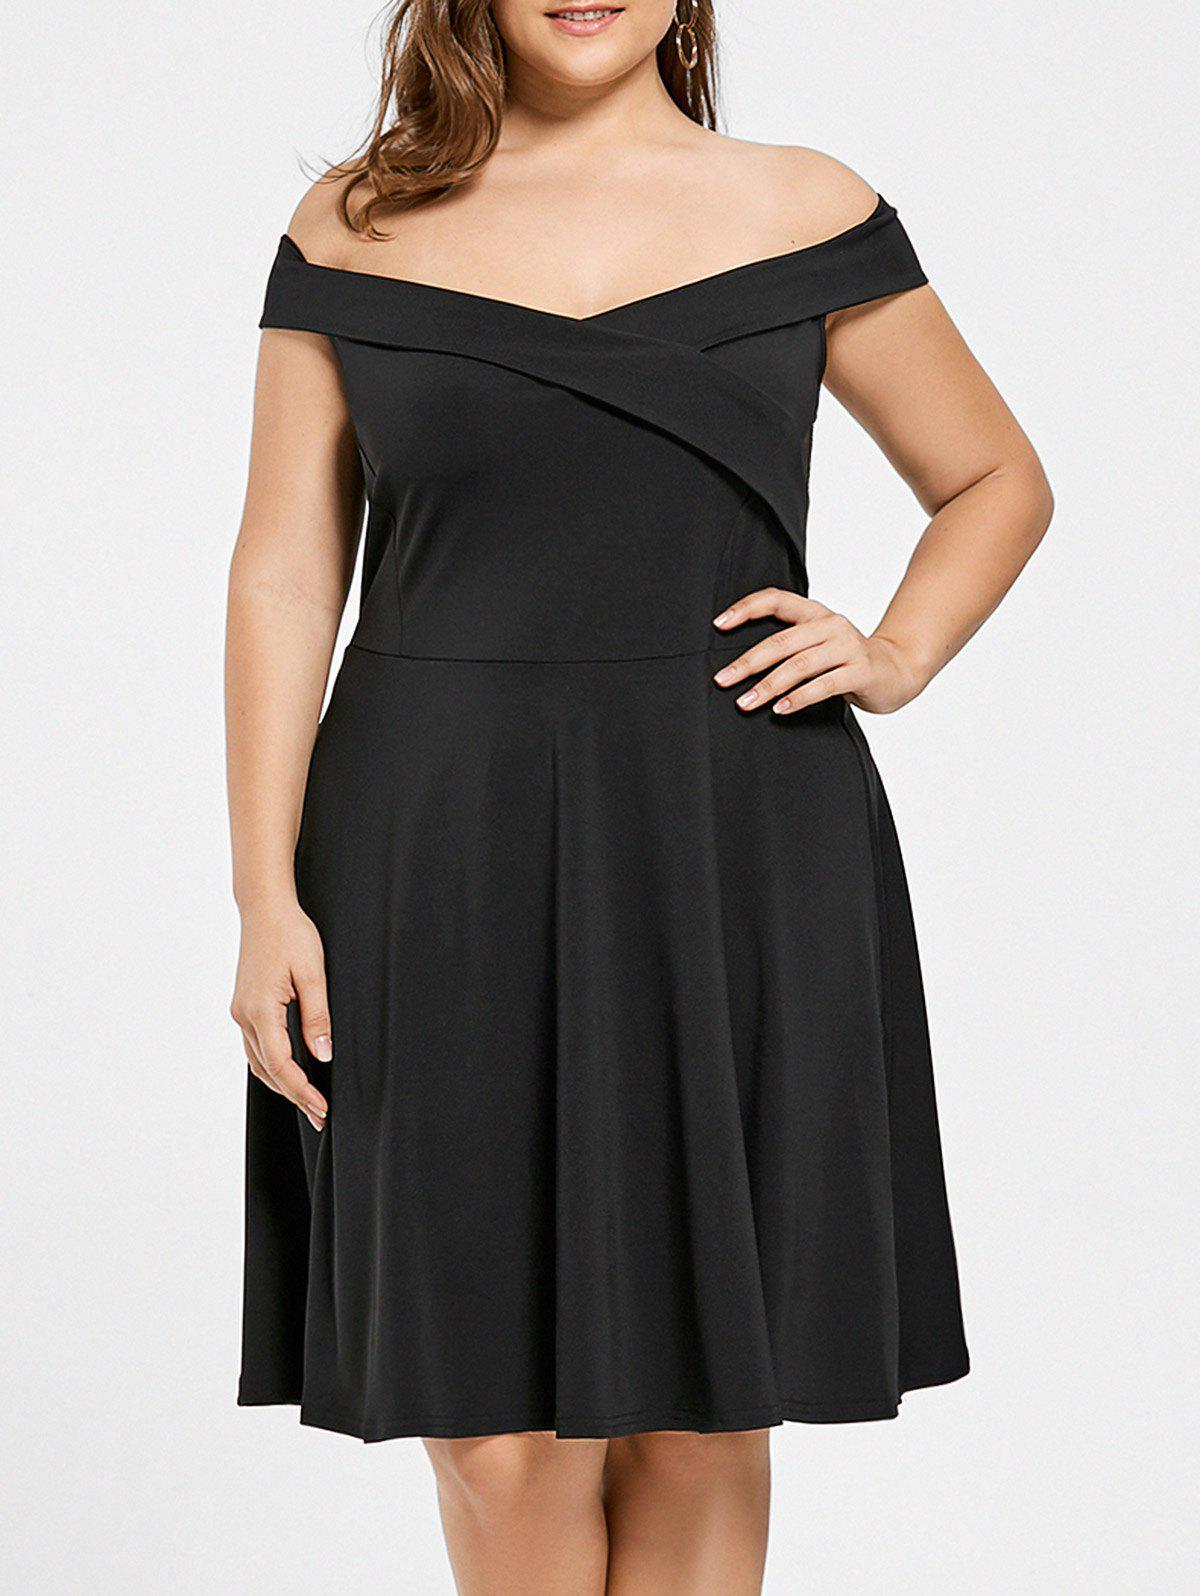 70% OFF] Plus Size Off Shoulder Mini Evening Dress | Rosegal